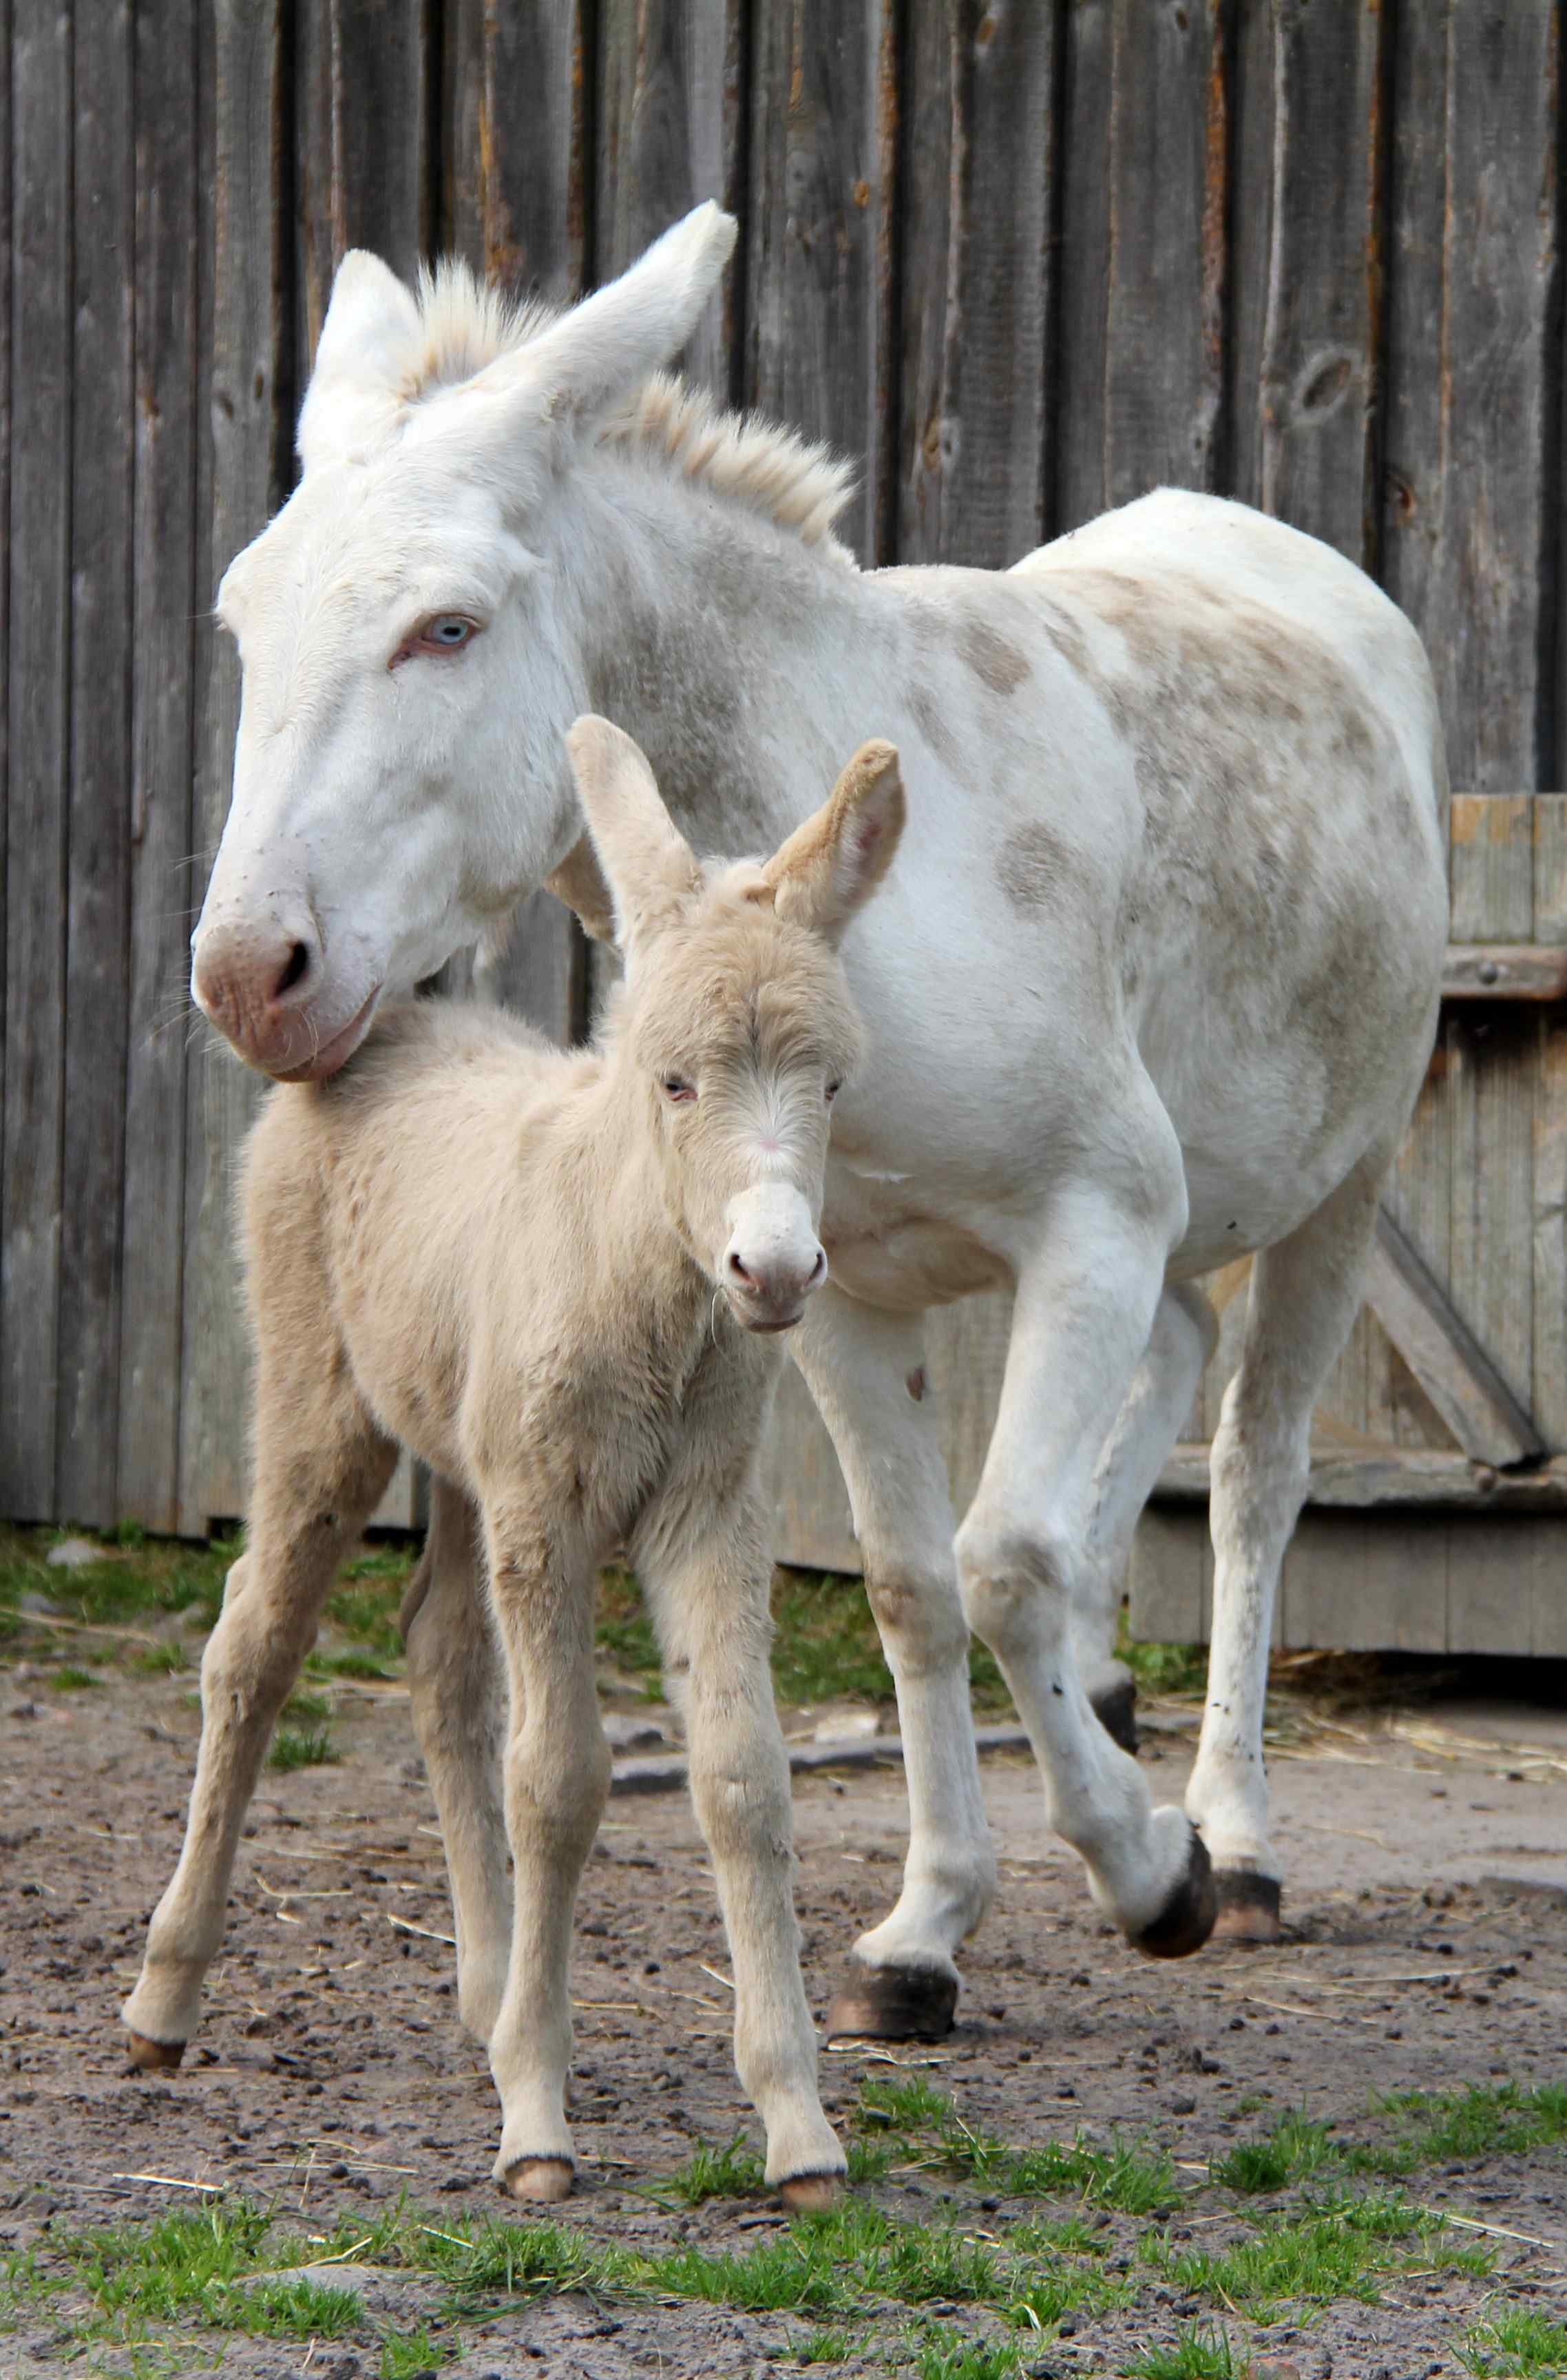 A white donkey foal walks with his mother Anuschka in his enclosure at the West Coast park in St. Peter-Ording, Germany on September 09, 2012.